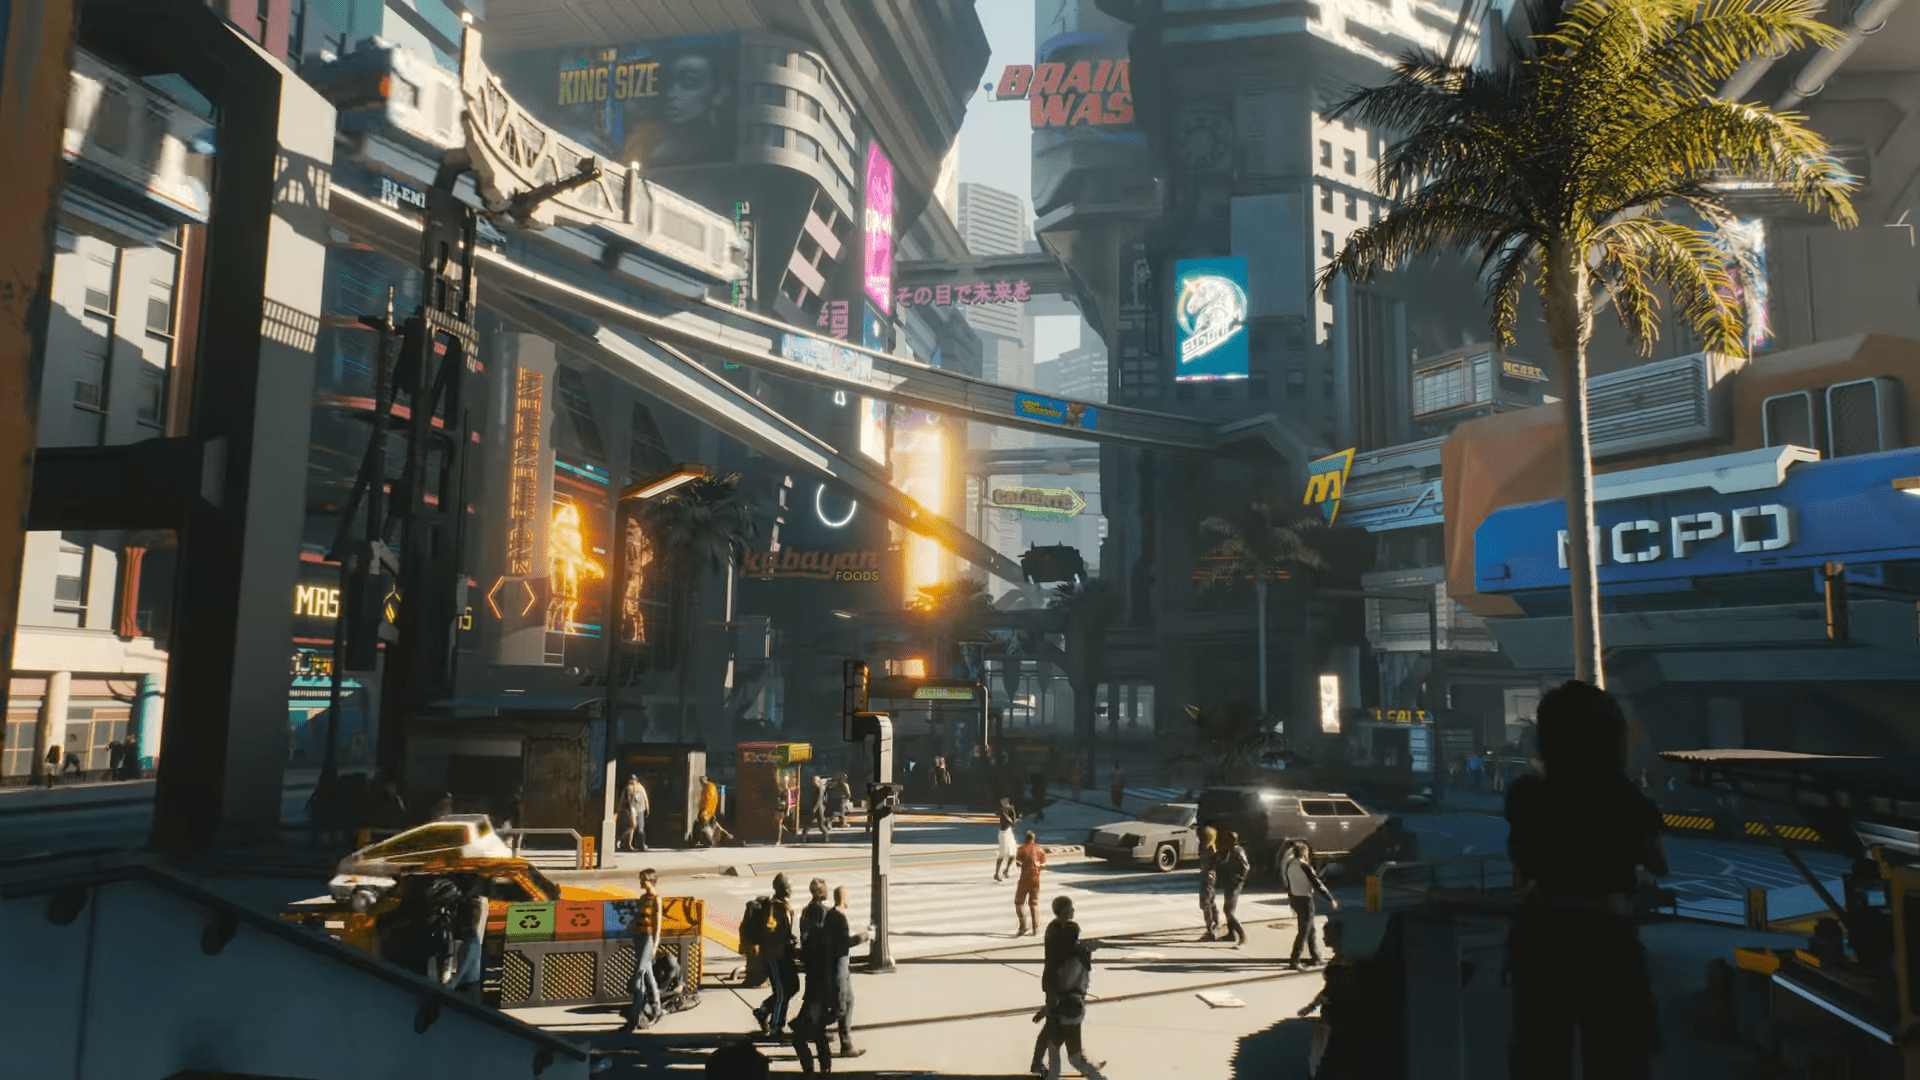 Cyberpunk 2077 multiplayer may have microtransactions